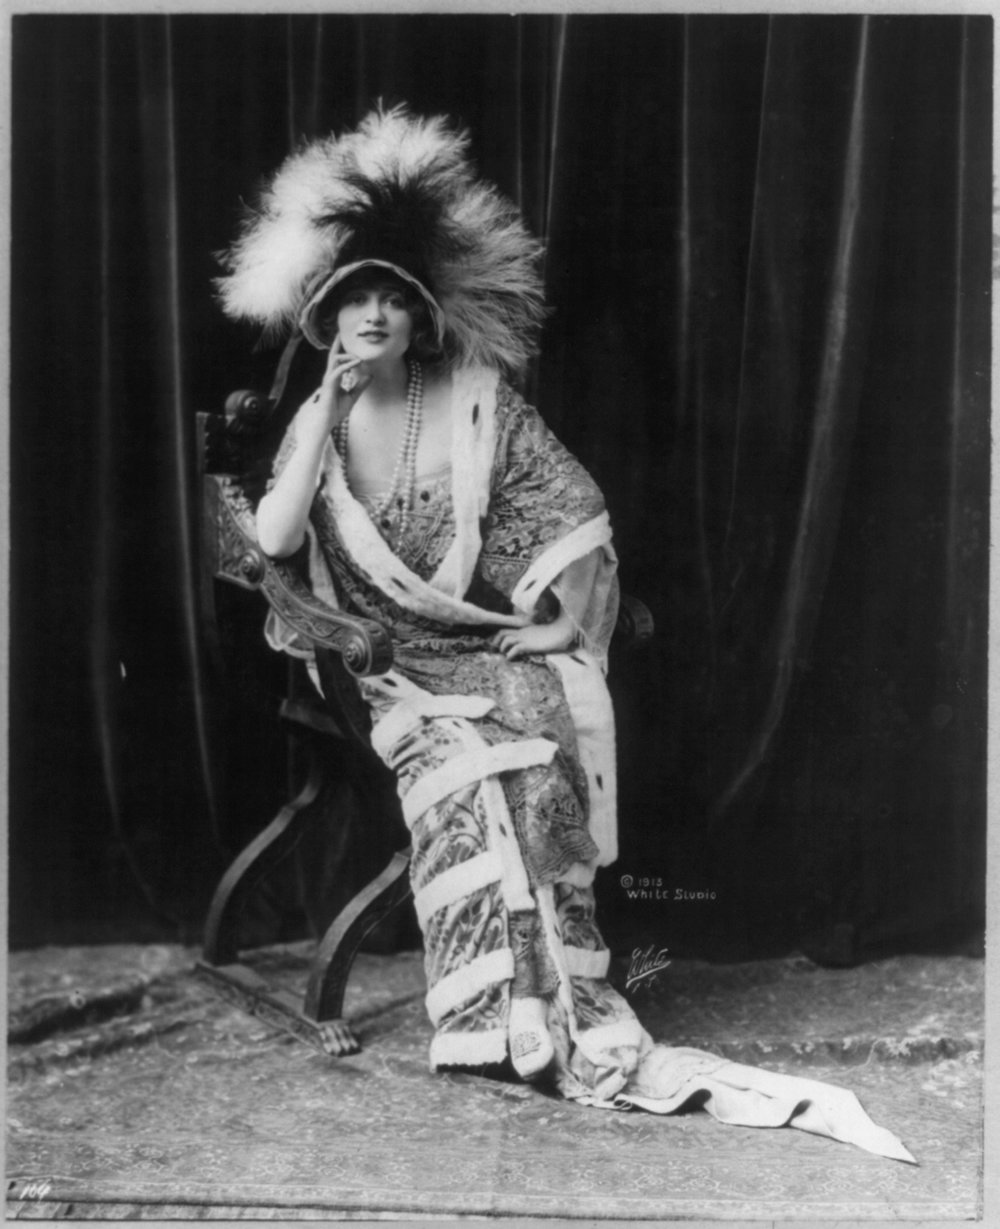 U.S. LIBRARY OF CONGRESS   In the late 1800s and early 1900s, bird feathers were all the rage in women's fashion in the U.S. and Europe. Along with the destruction of habitats, over-hunting nearly led to the extinction of many species of birds.